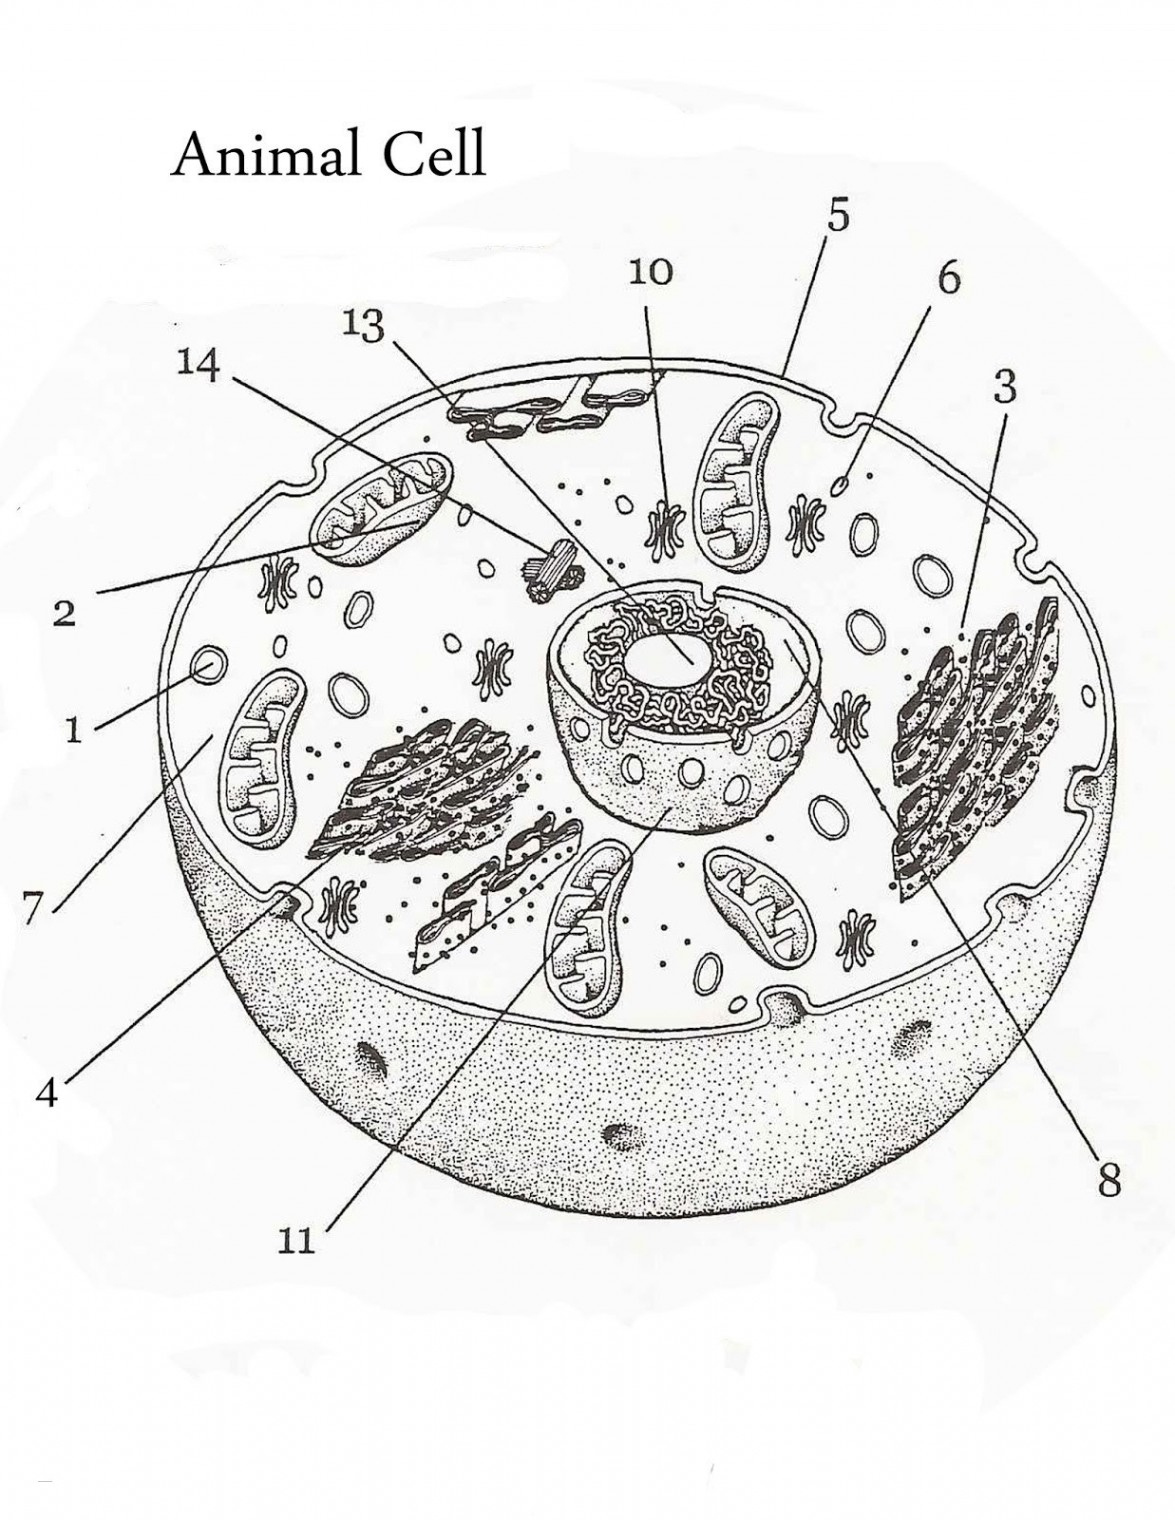 Plant And Animal Cell Diagram Diagram Of Heart Without Labels Fresh Animal Cell And Plant Cell